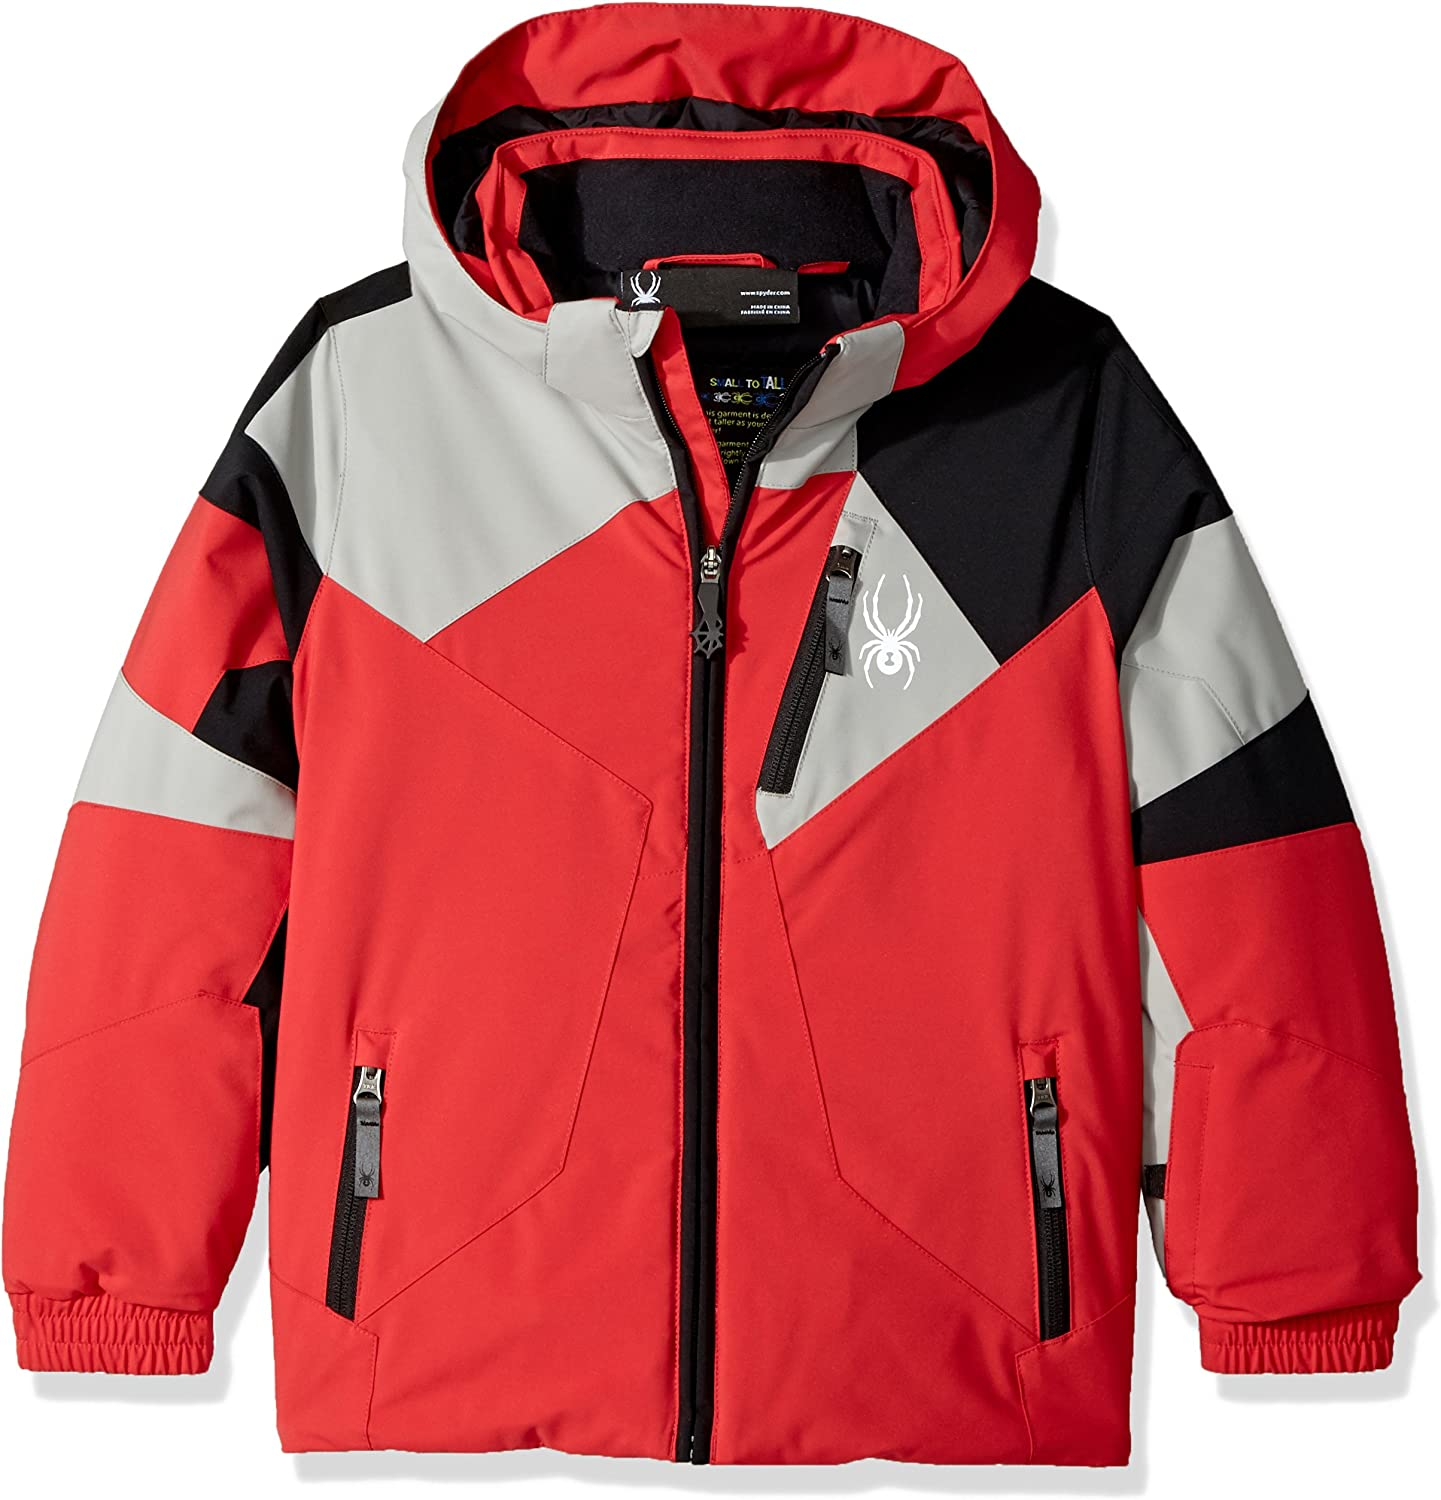 Spyder Special price Mini A surprise price is realized Leader Ski Jacket Red 6 Black Limestone Size